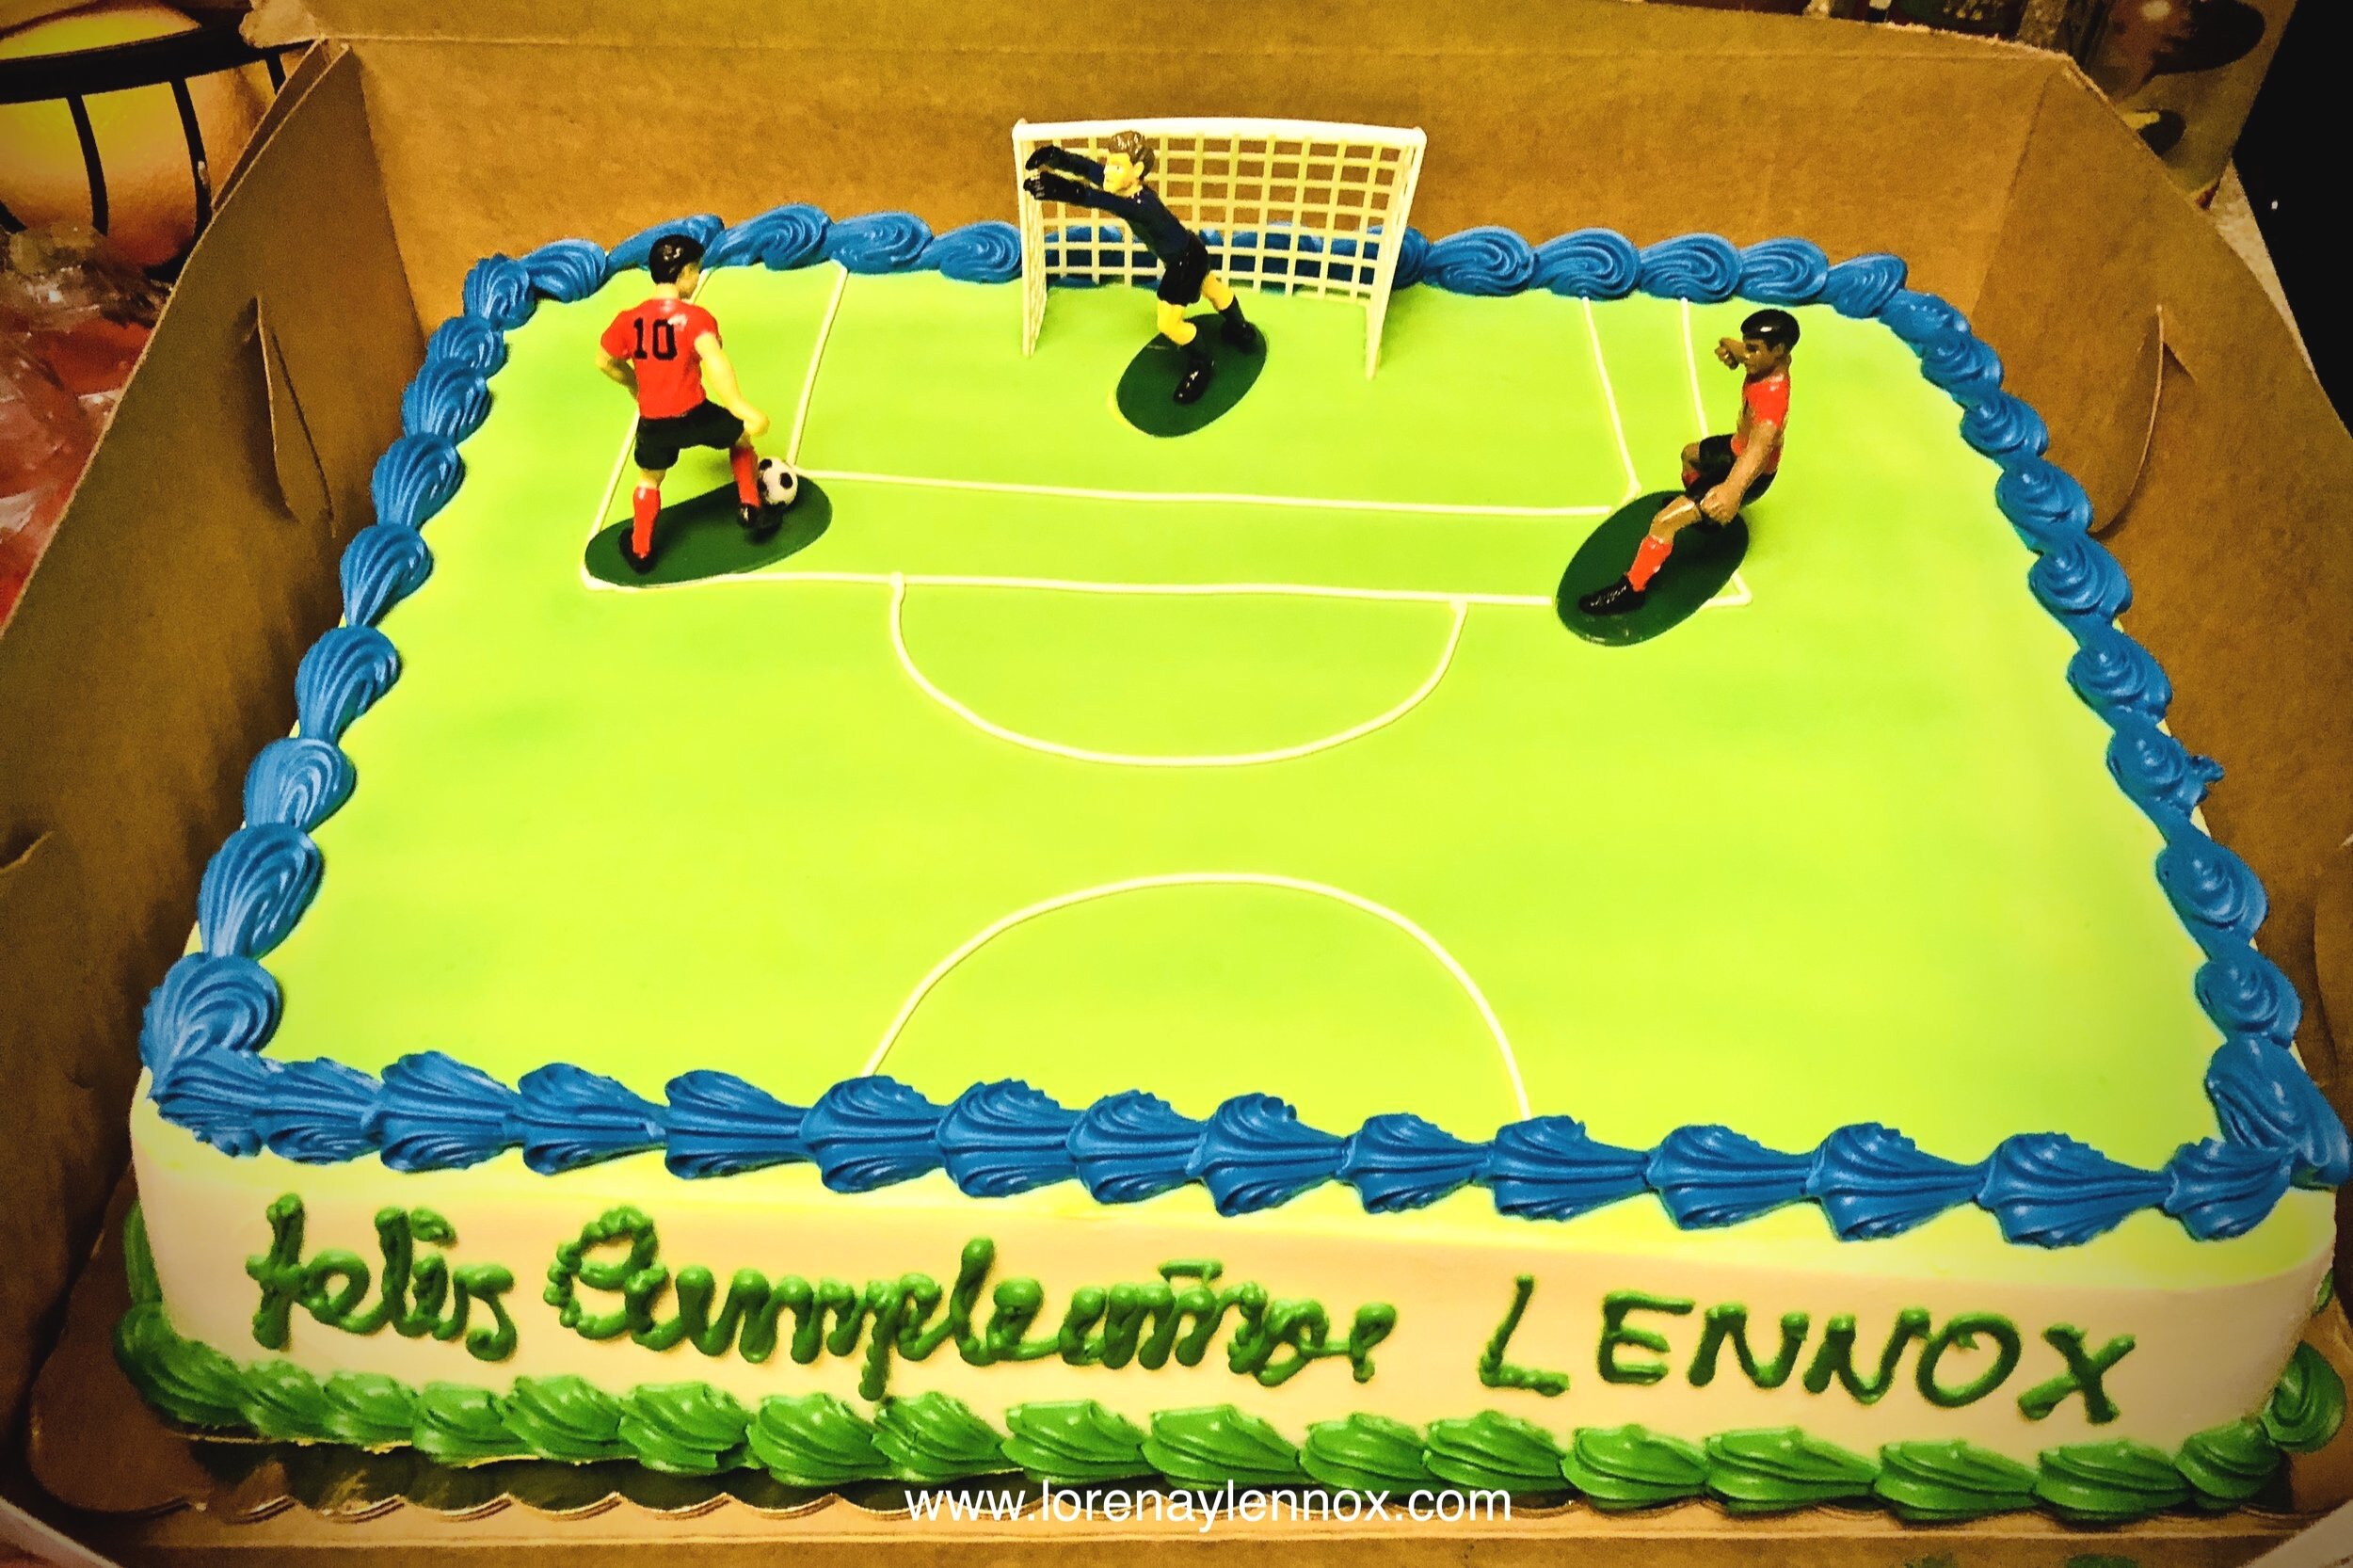 Ideas for a Soccer-Themed Birthday Party for Your One-Year-Old Boy